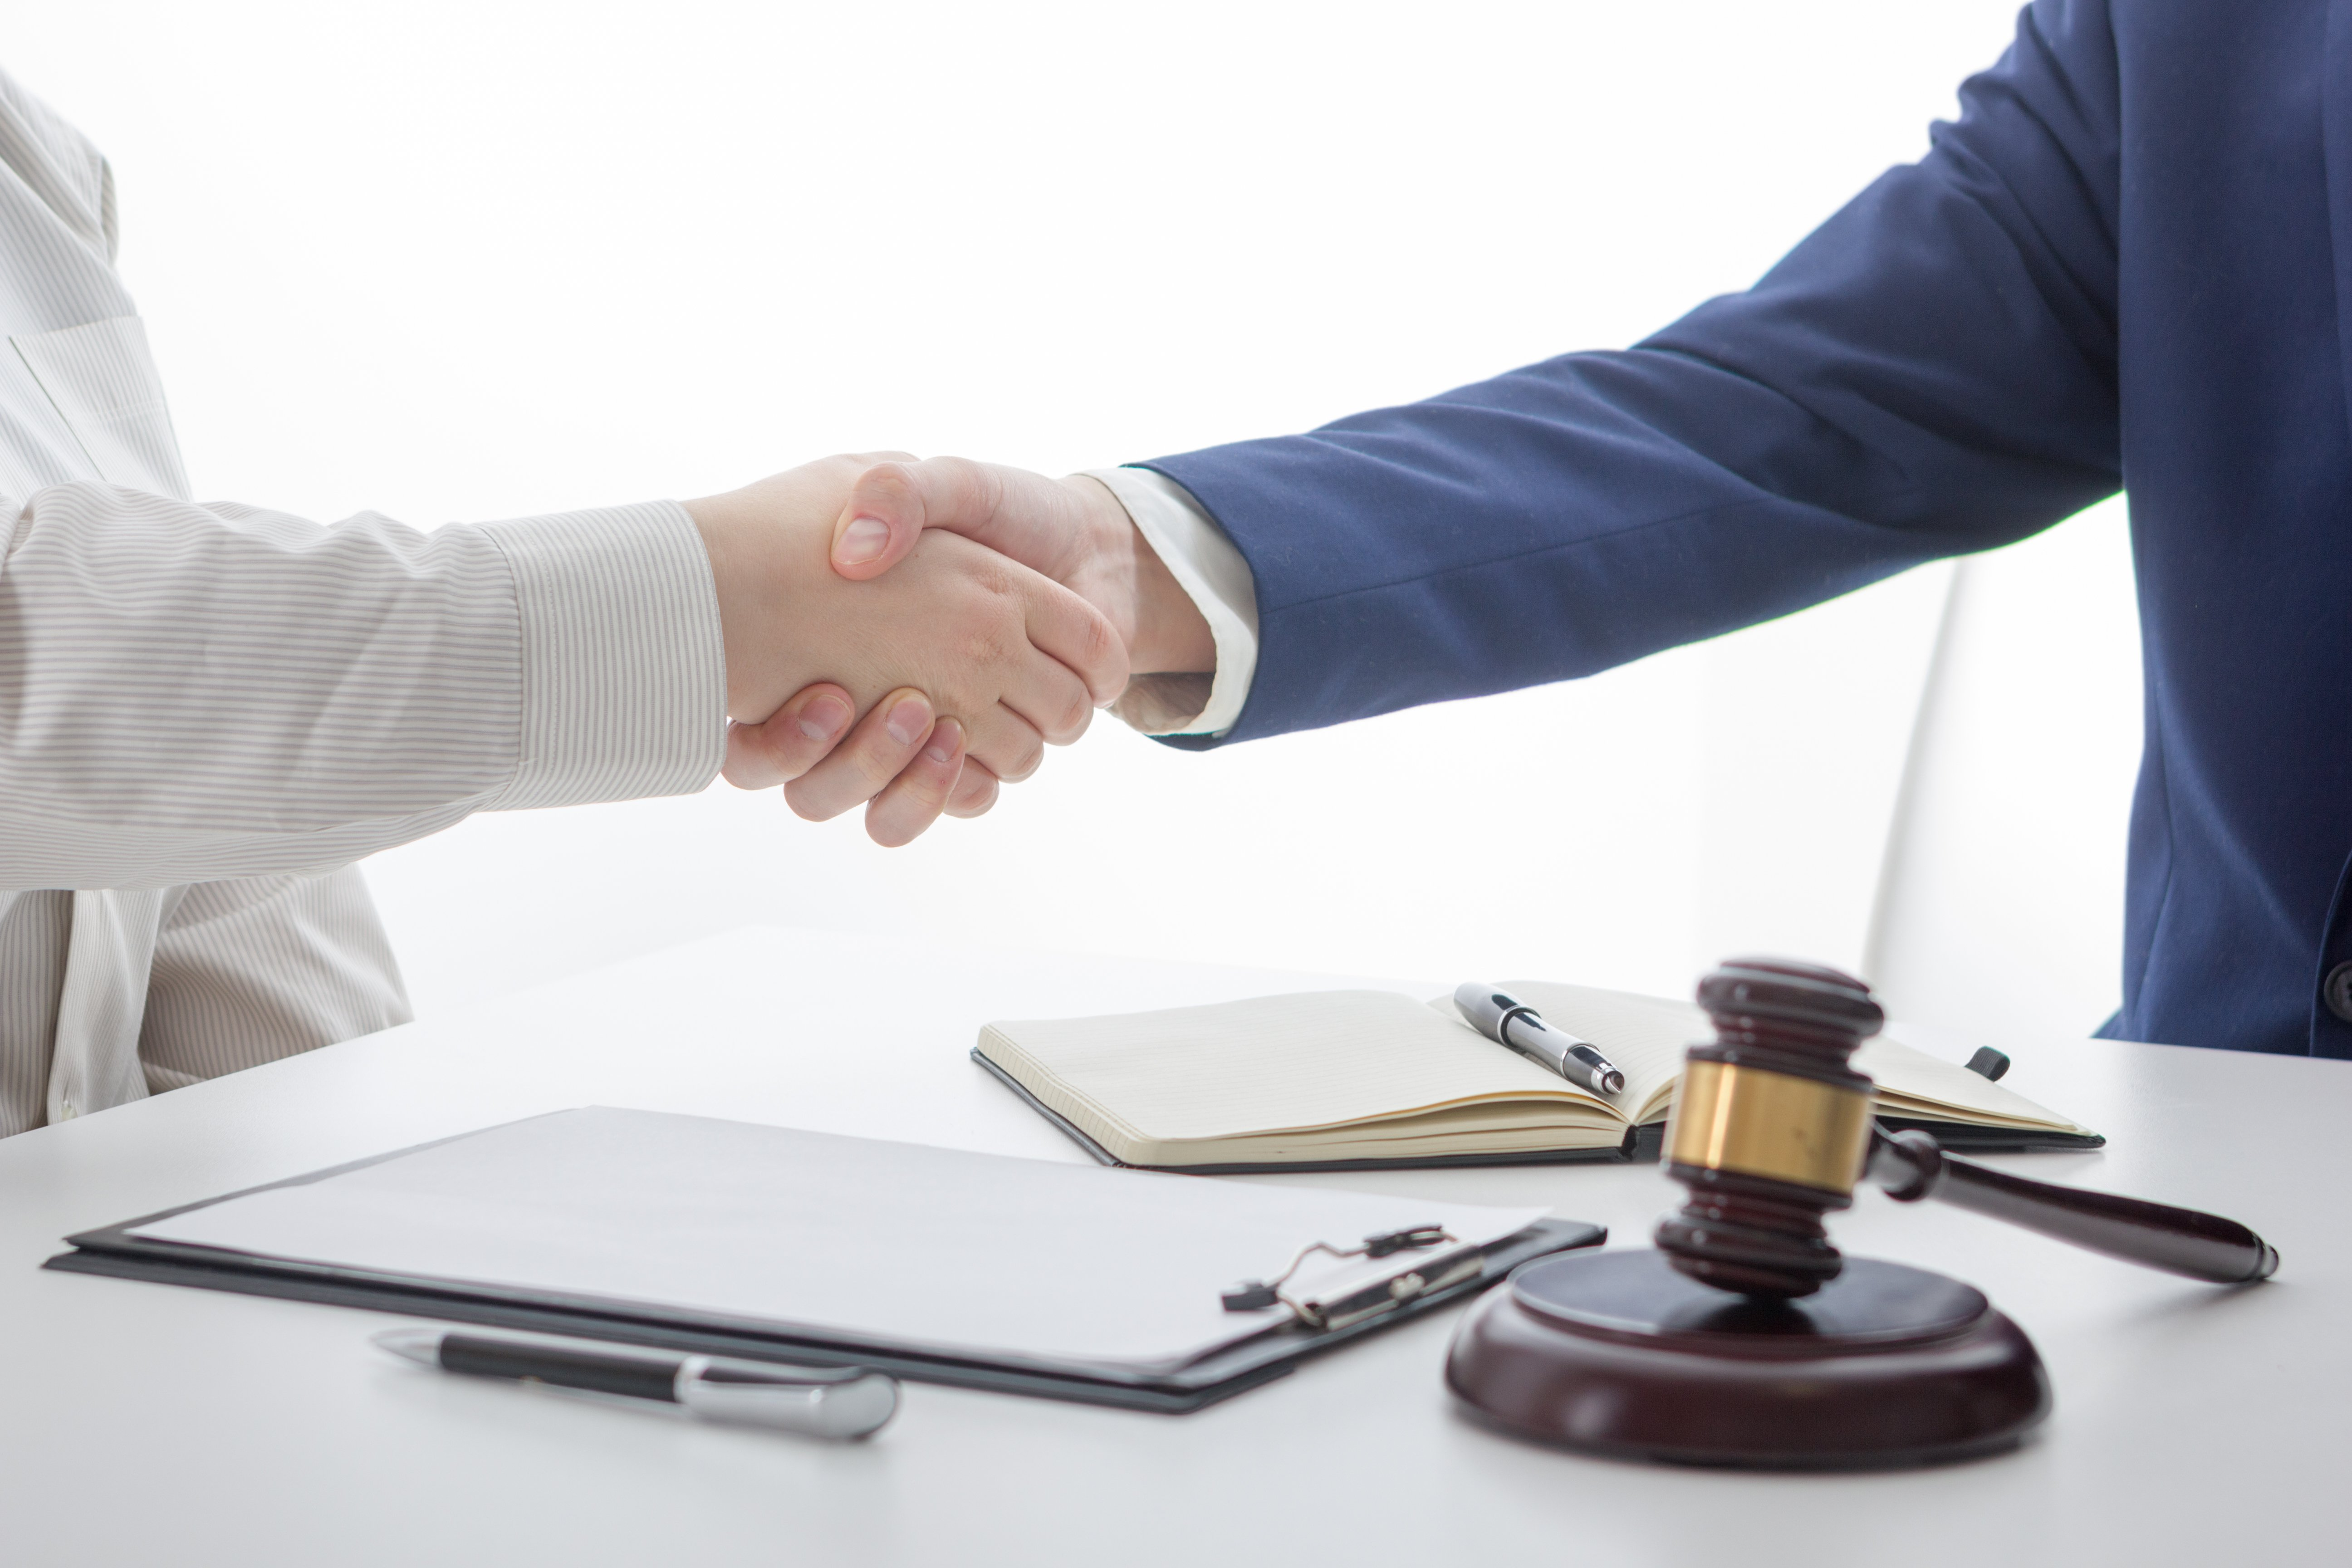 lawyers shaking hands at a law firm, suggesting the closing of a deal or acceptance of a training scheme